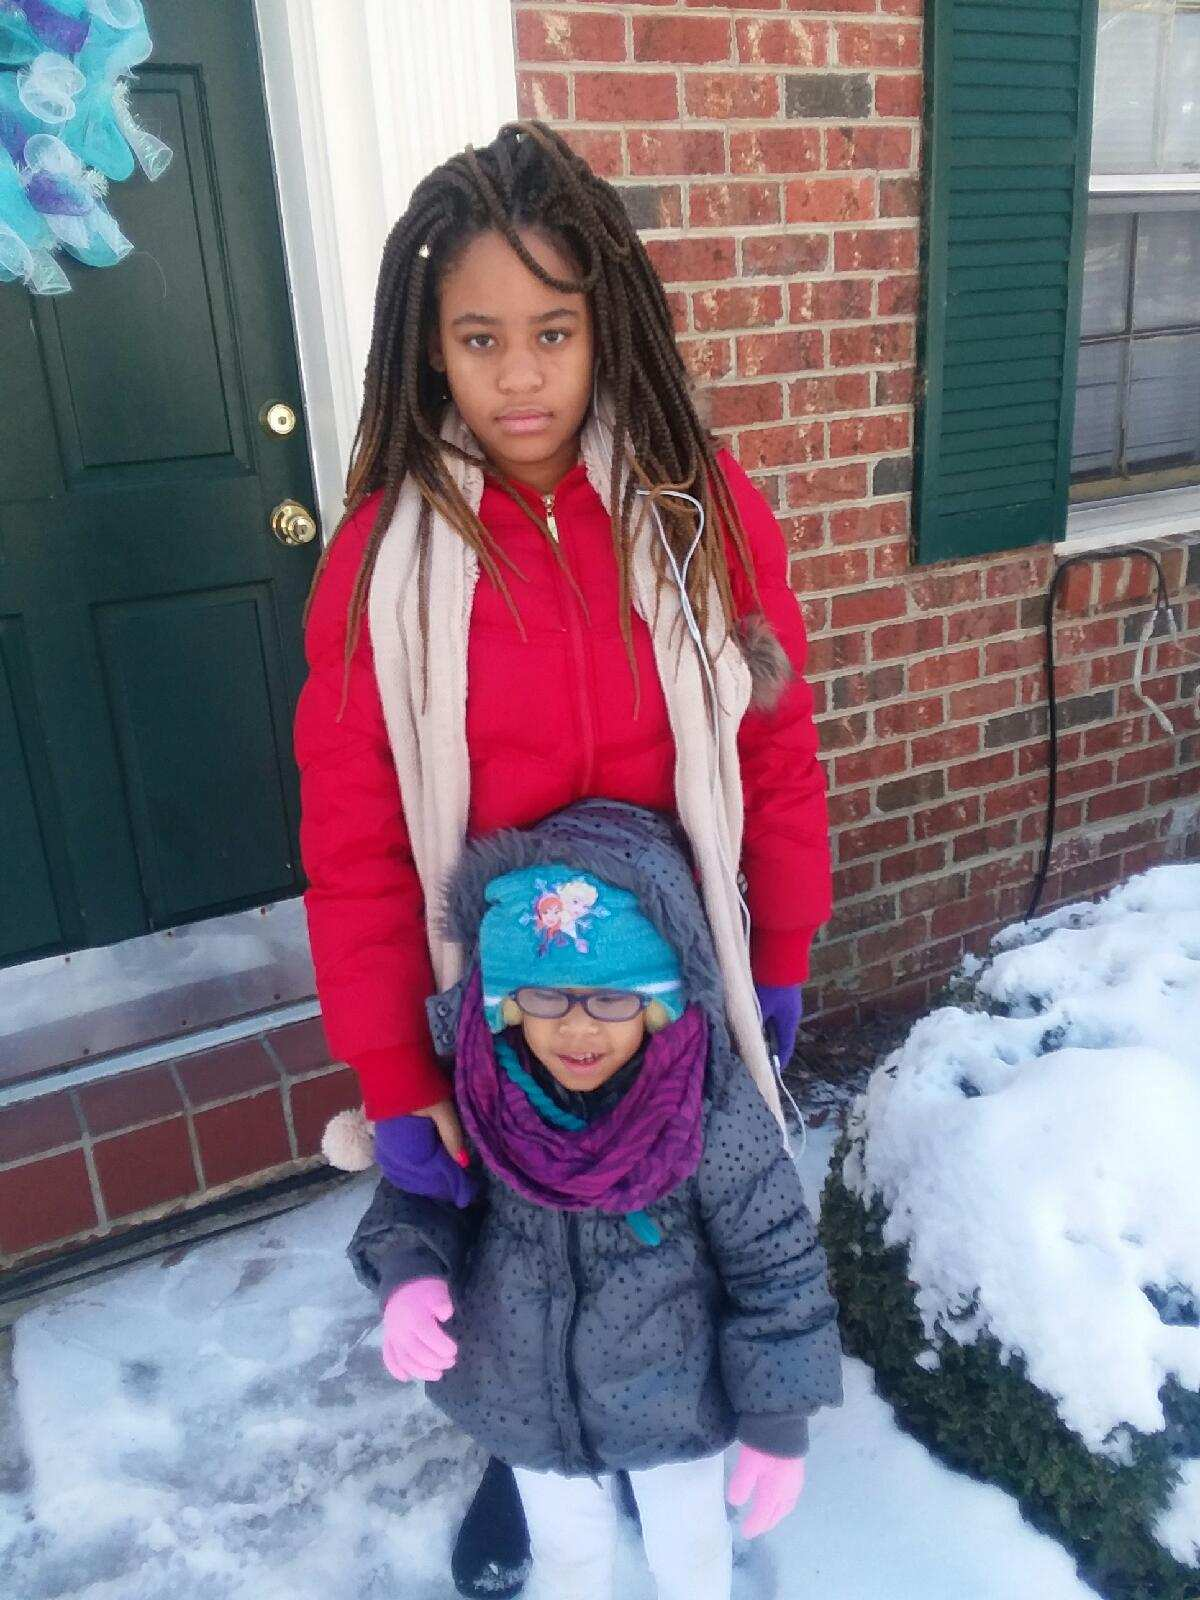 "<div class=""meta image-caption""><div class=""origin-logo origin-image none""><span>none</span></div><span class=""caption-text"">Jasney Emerson and Kinley Howard enjoying sister love on their snow-day off. (Regina Emerson - ABC11 Eyewitness)</span></div>"